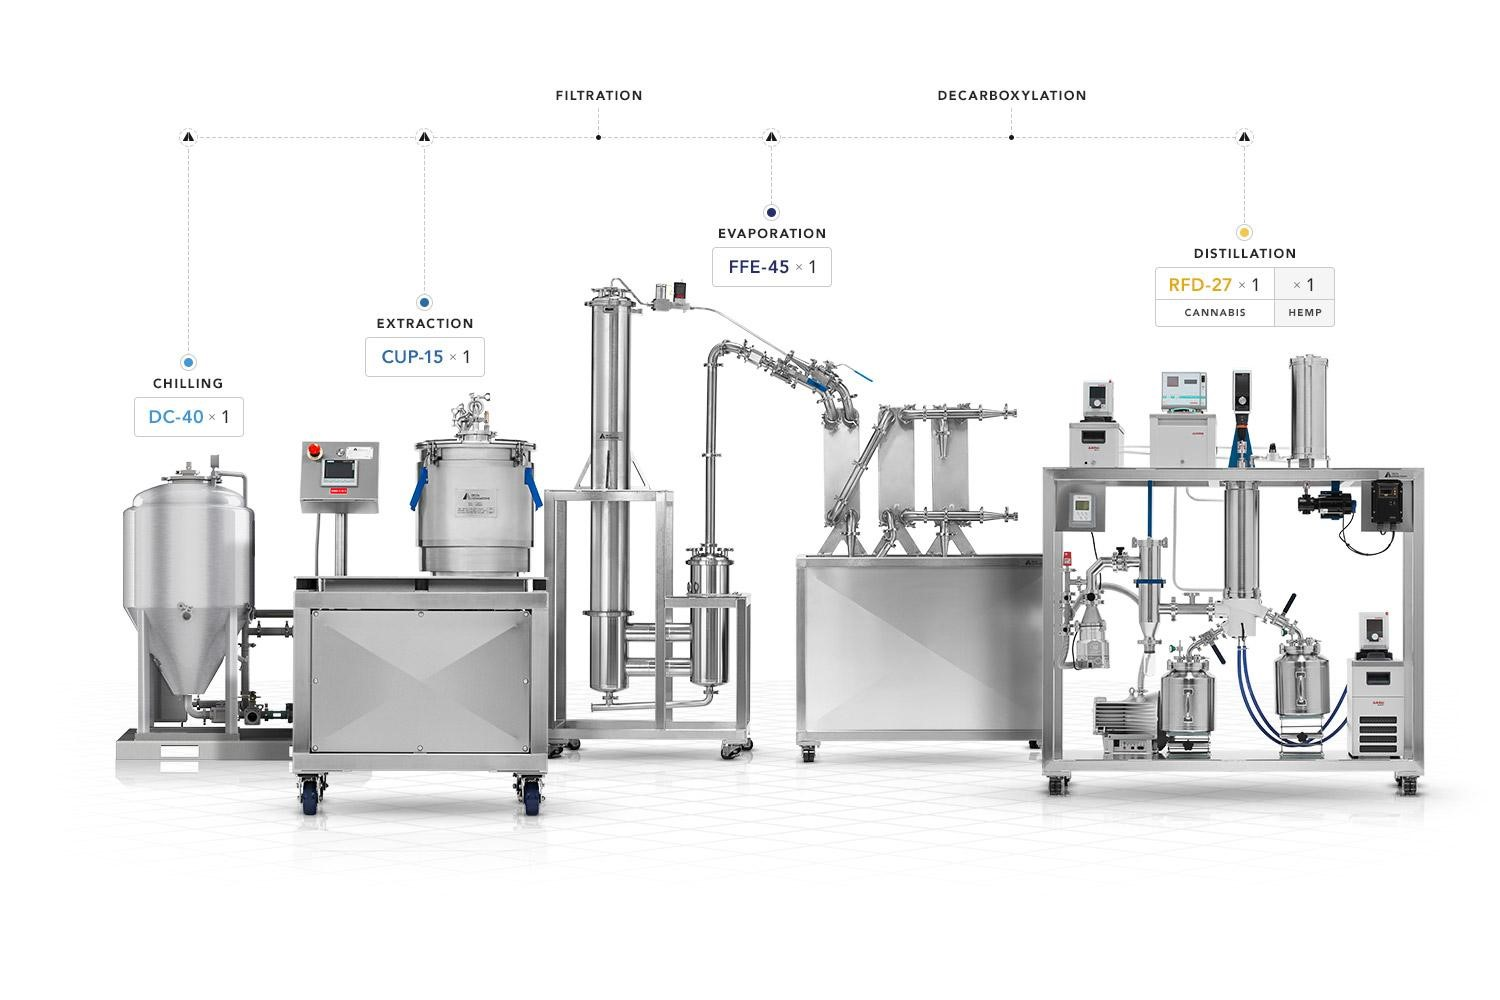 Equipment for Ethanol Extraction